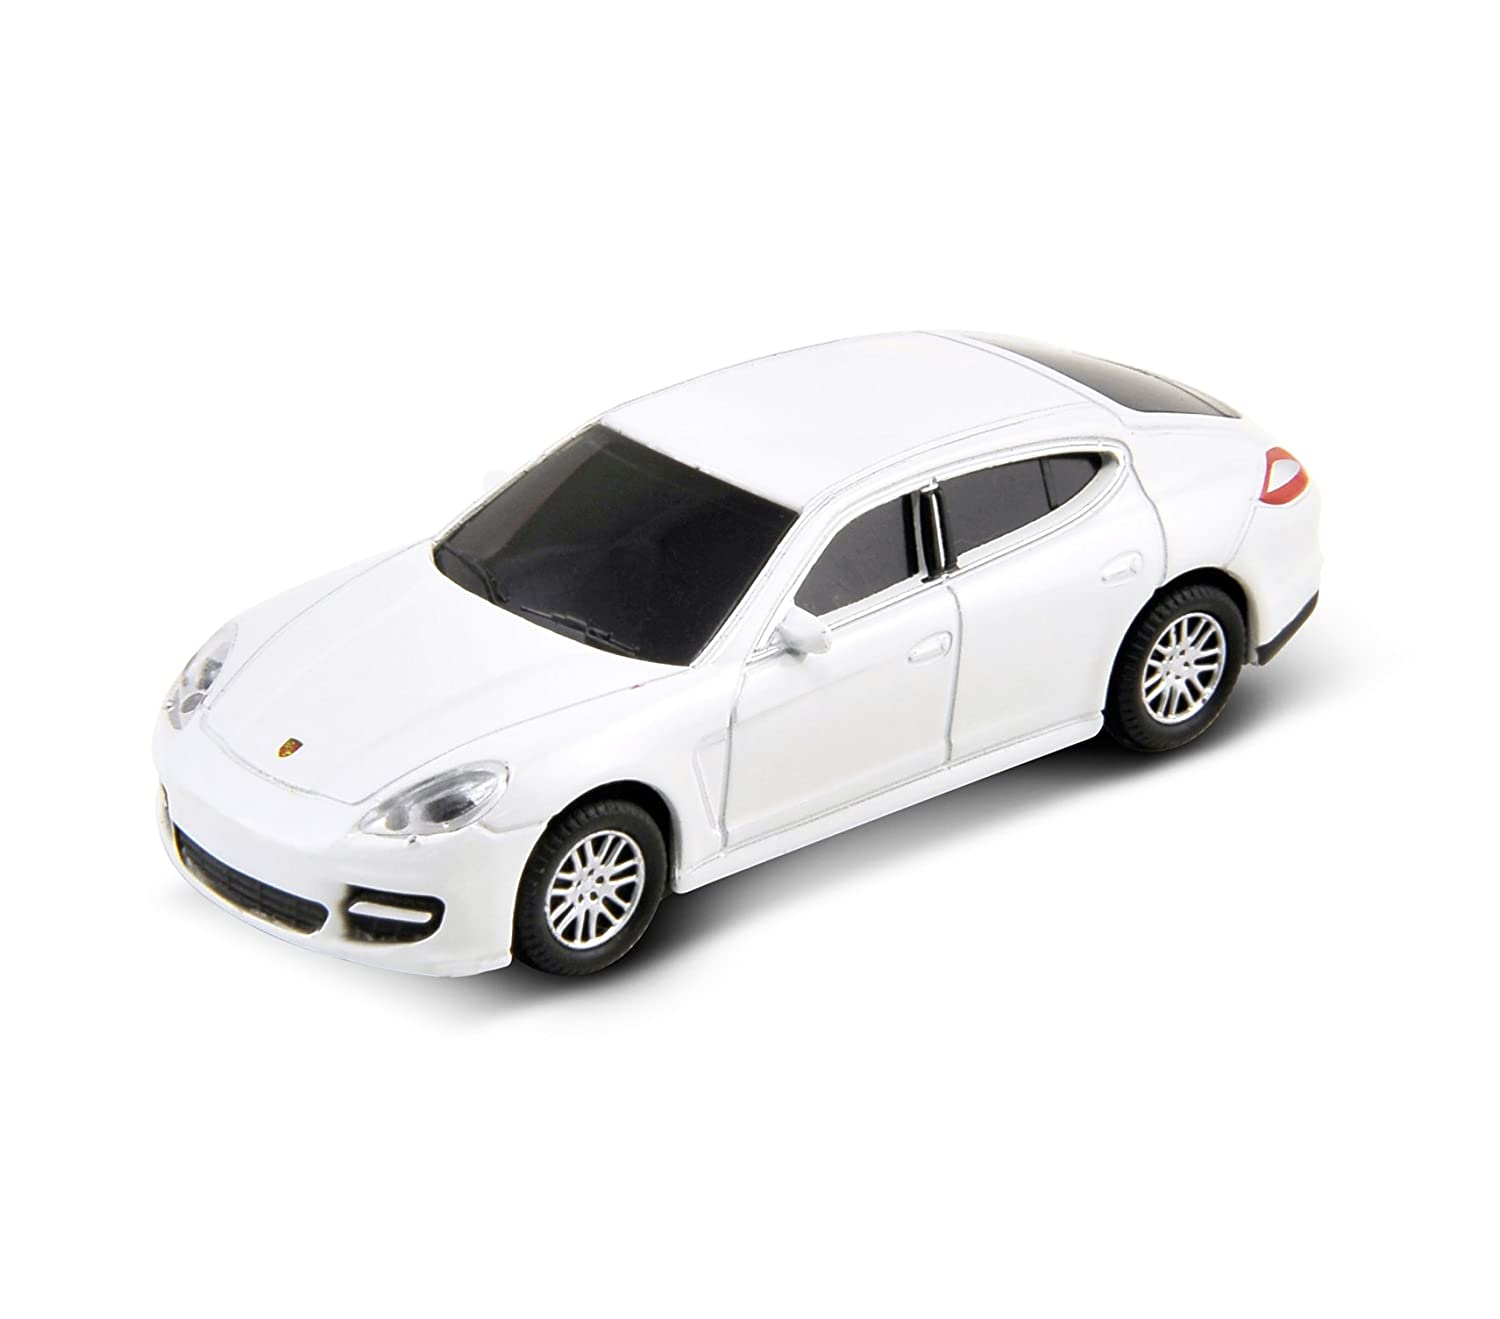 Autodrive 92907W - Memoria Flash USB 2.0 (8 GB), diseño de Porsche Panamera Turbo, Color Blanco: Amazon.es: Informática